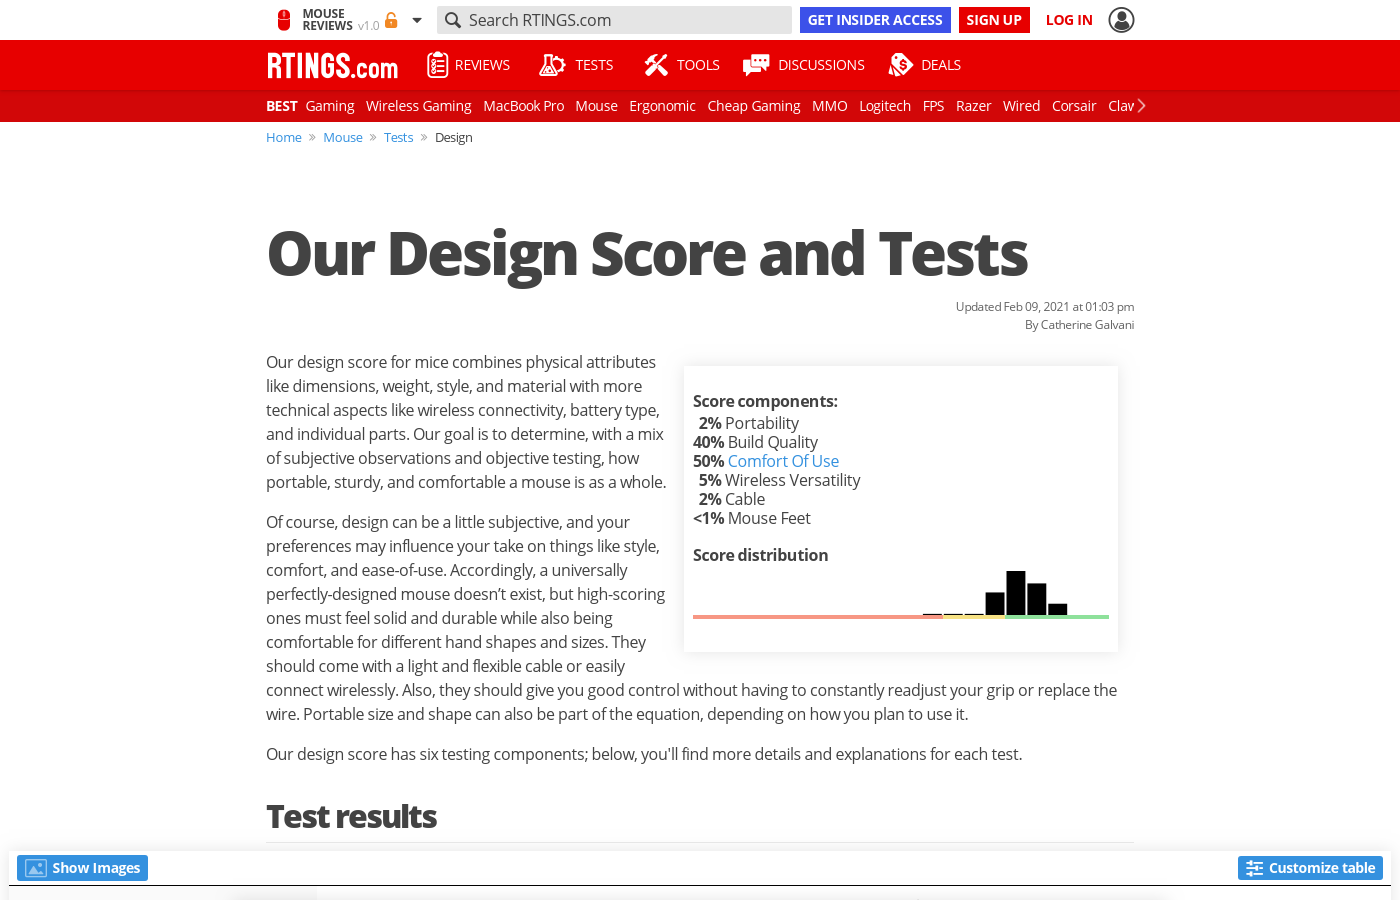 Our Design Score and Tests